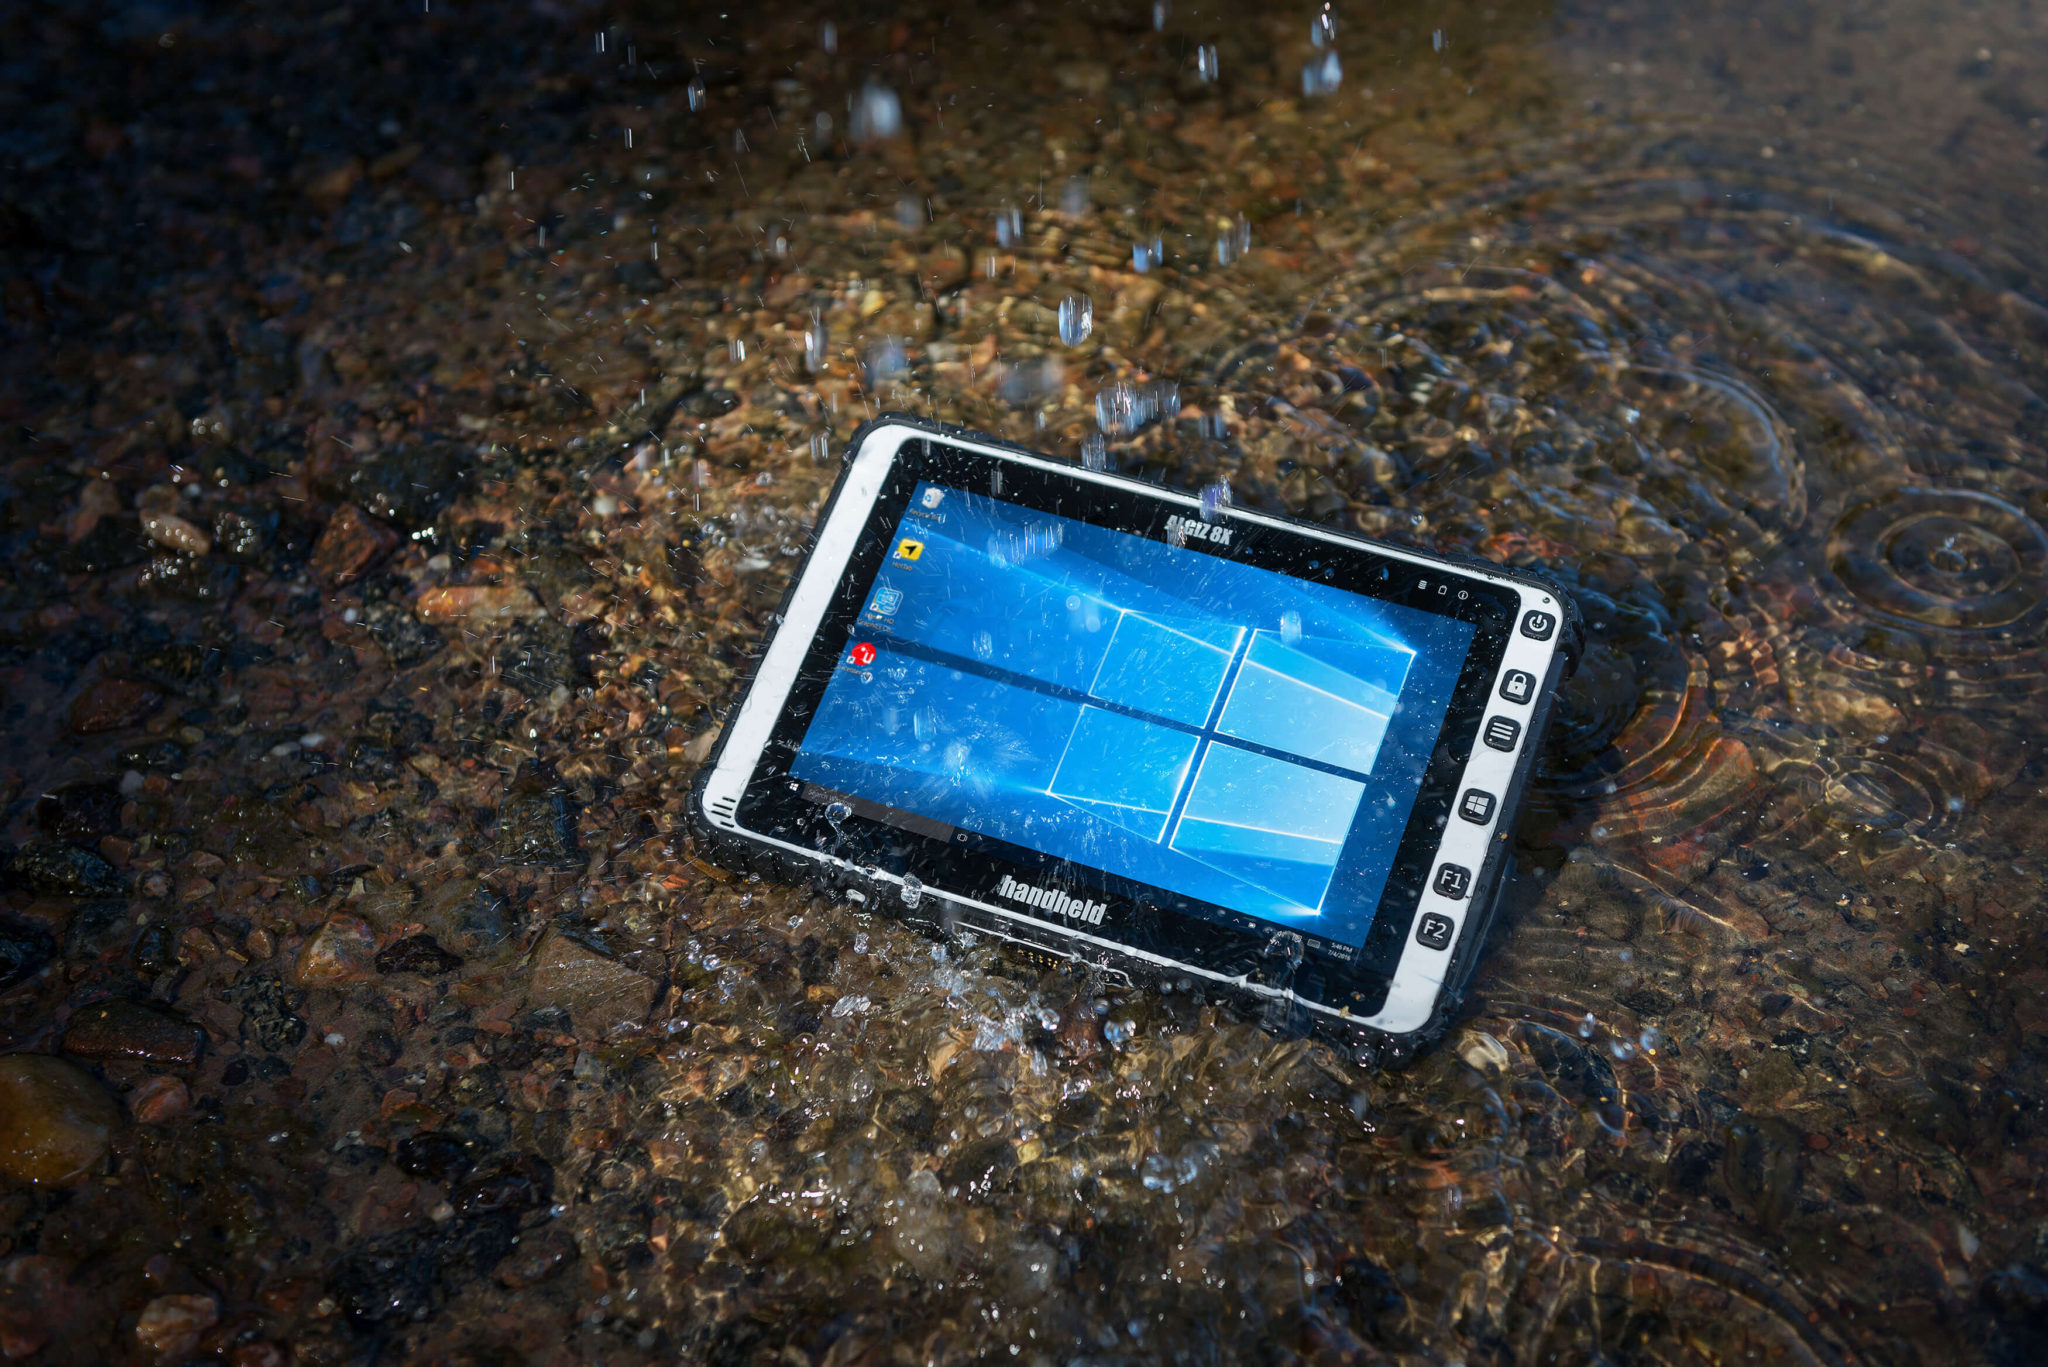 Algiz-8X-rugged-tablet-by-Handheld(1)